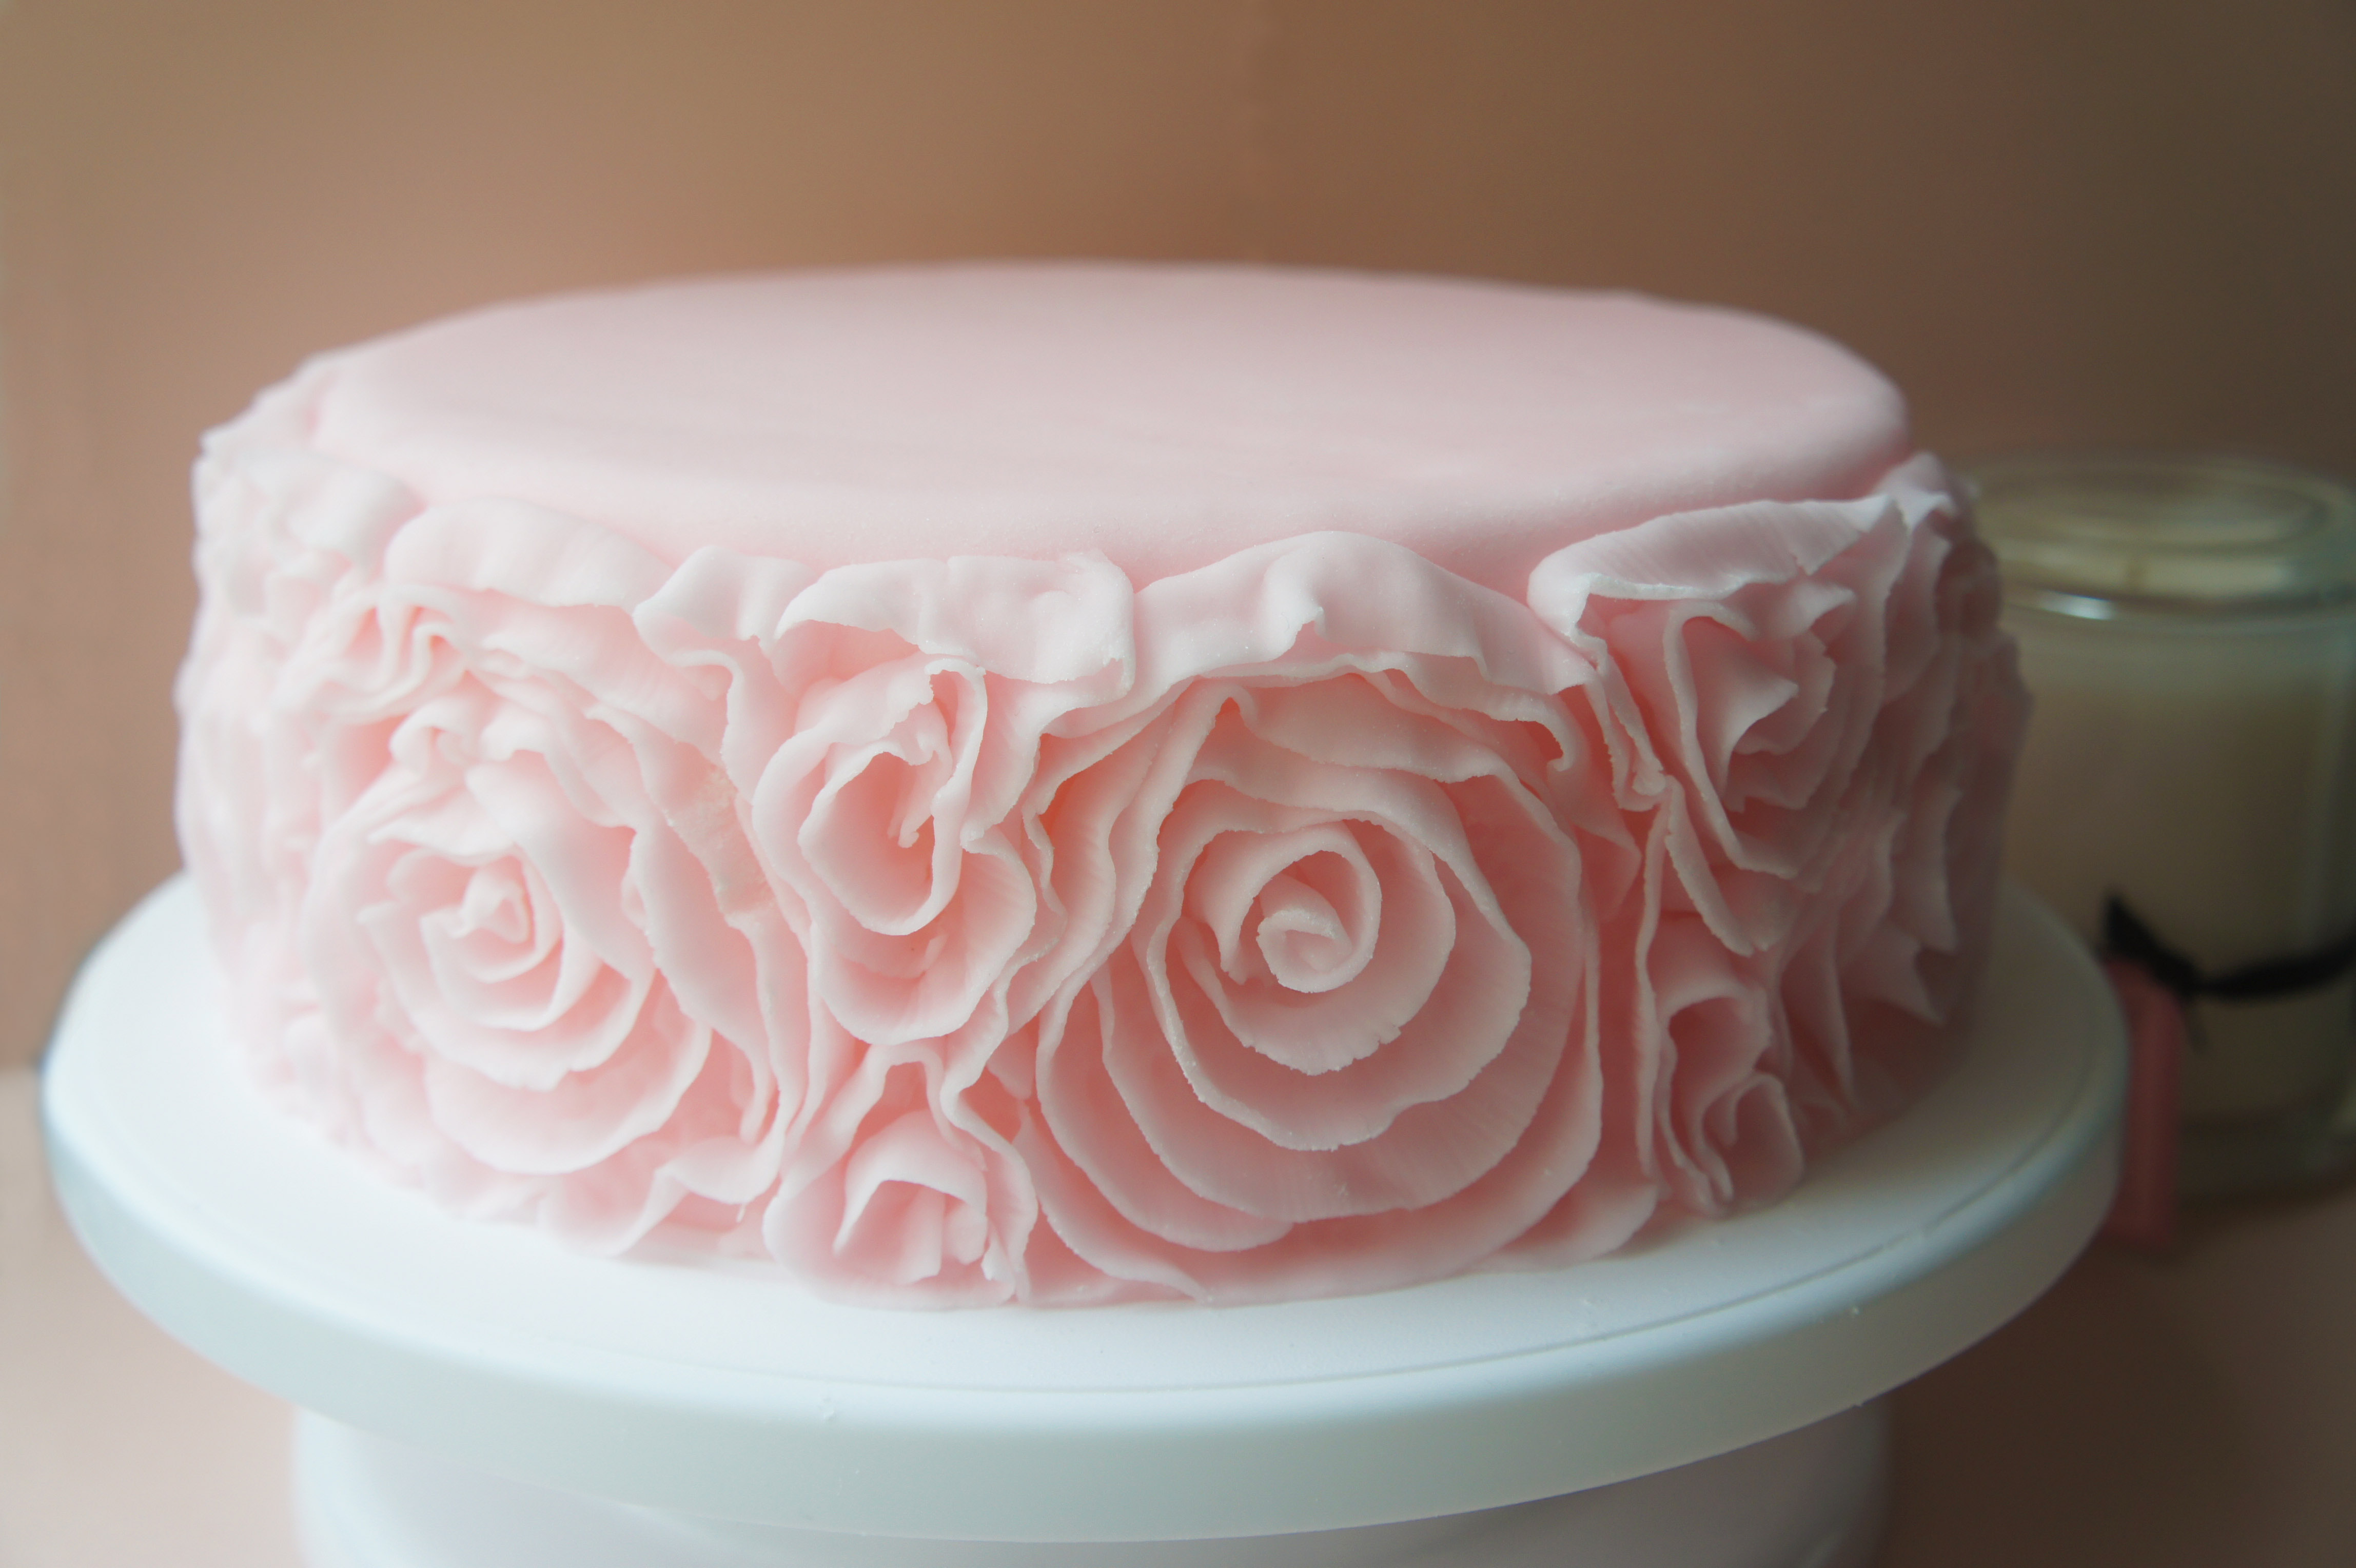 Cake Making With Fondant : How to Make Fondant Side Ruffle Roses A Spoonful of Cake